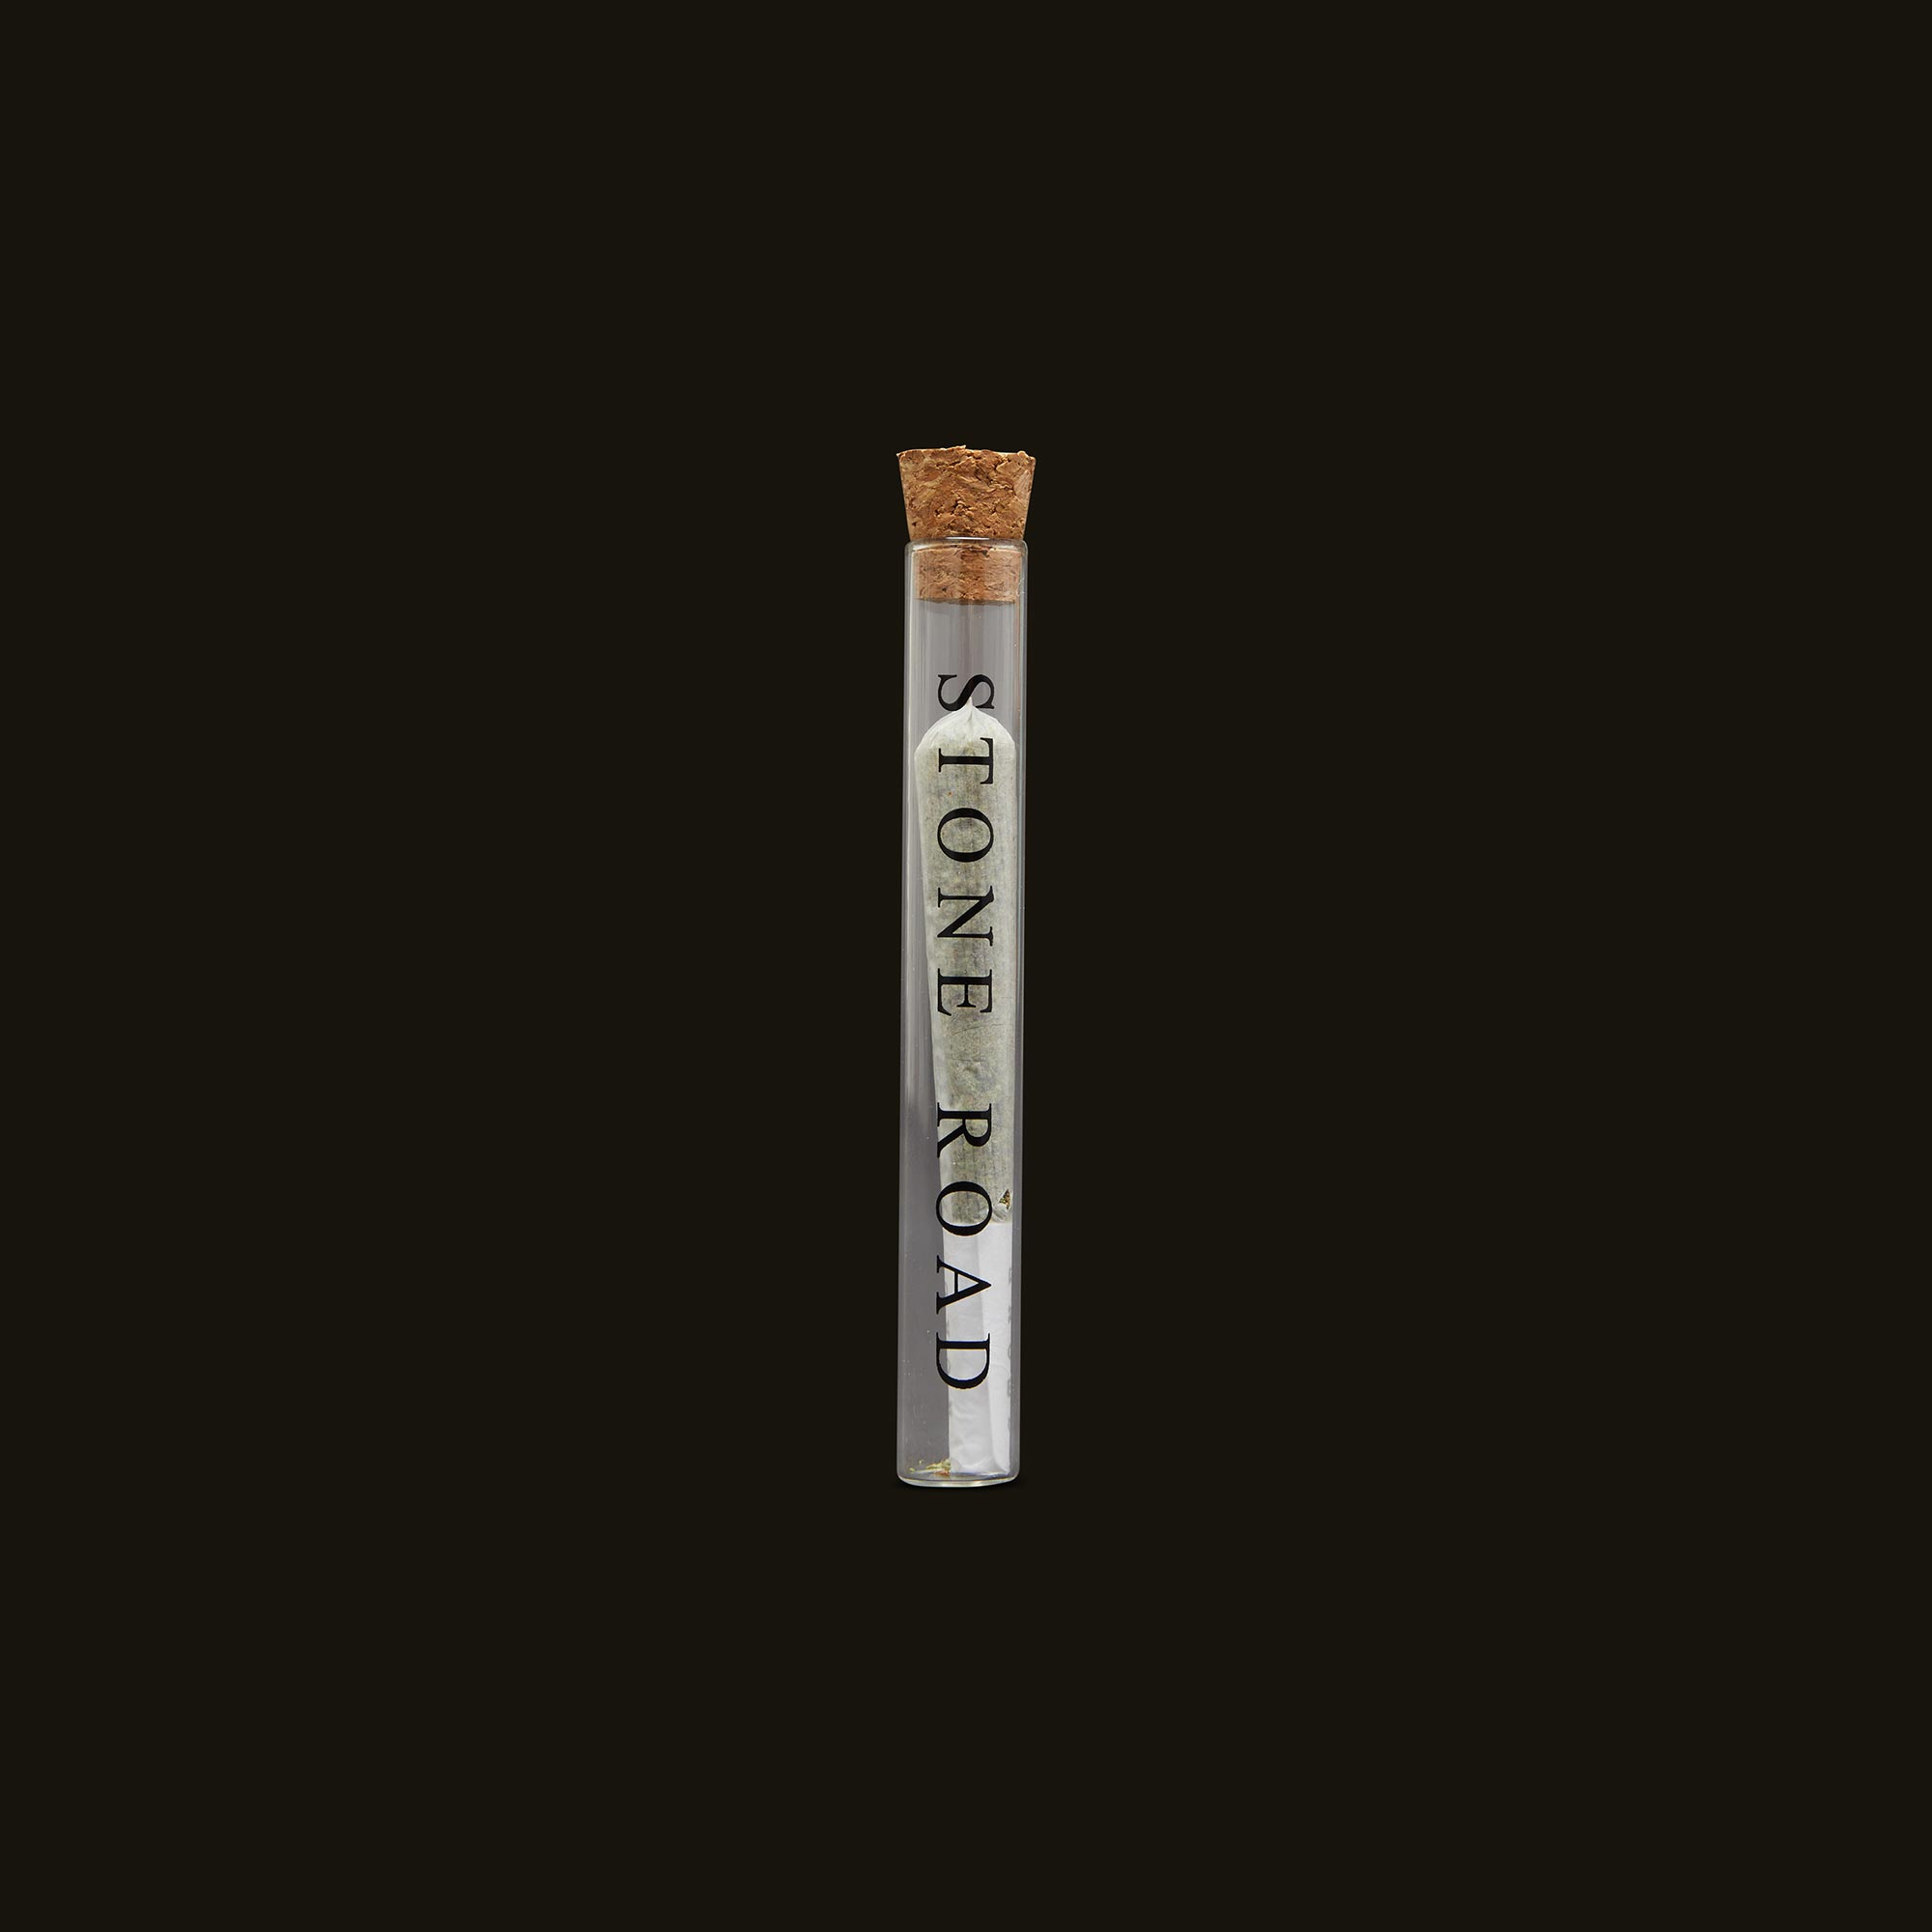 Connoisseur Pre-Rolls by Stone Road